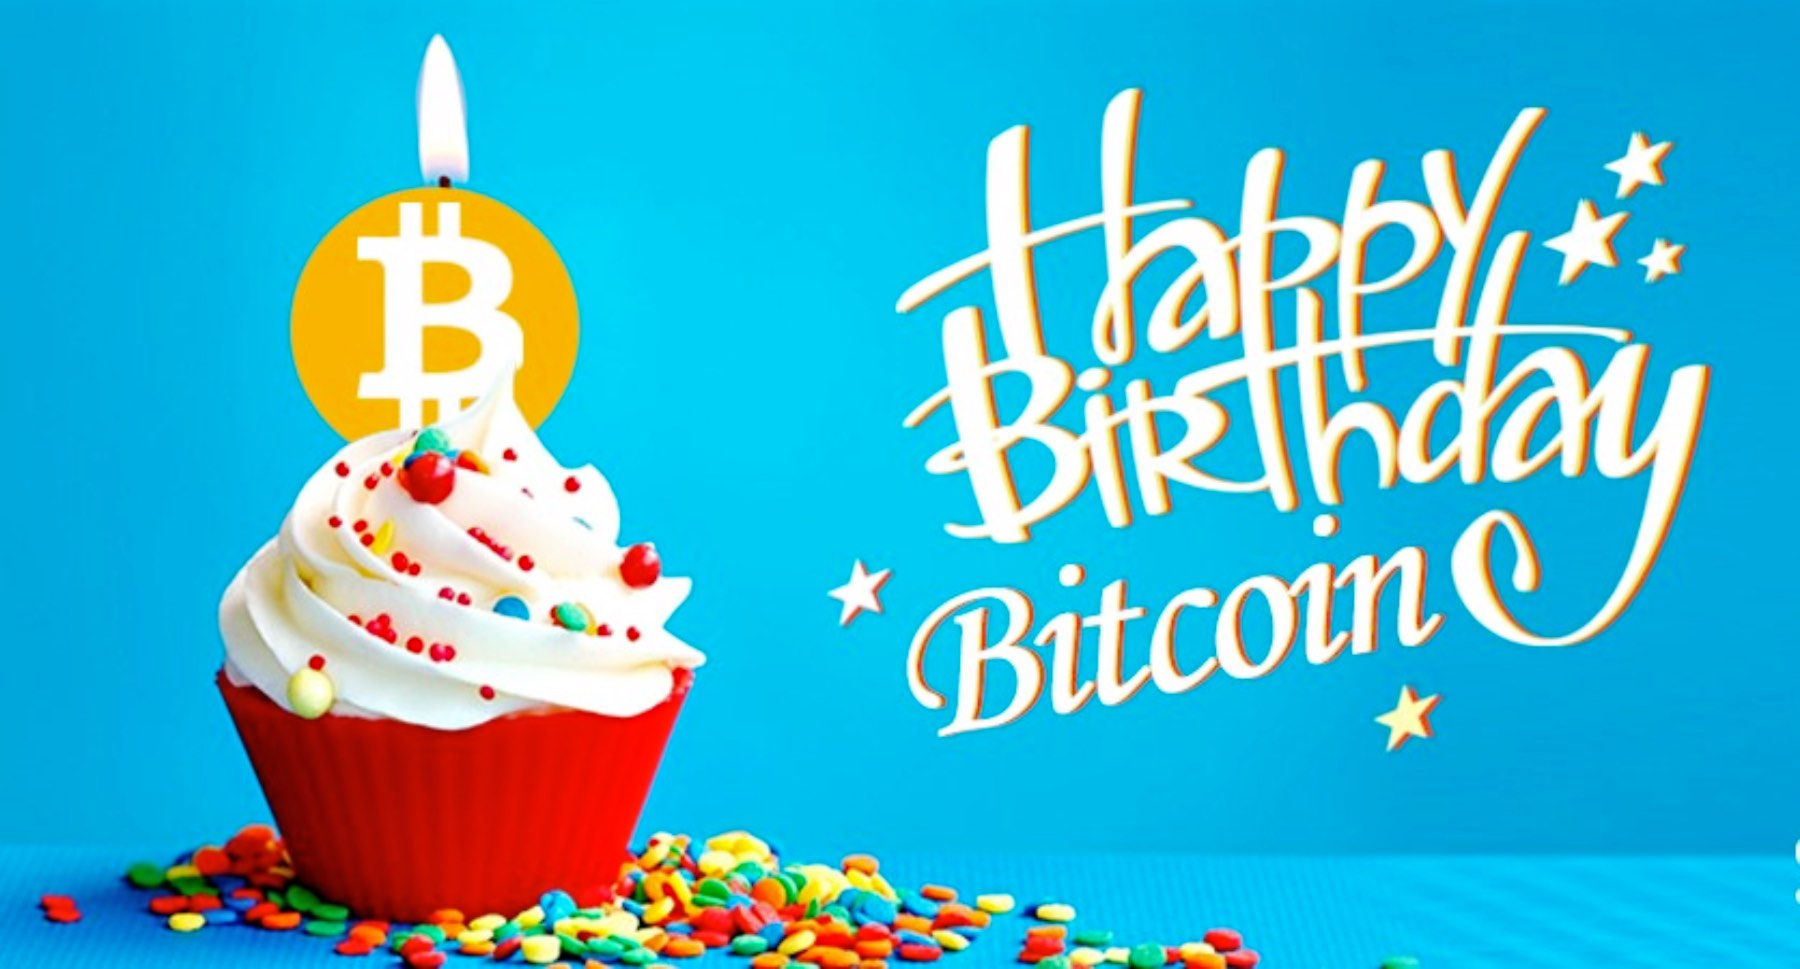 Bitcoin turns 10 and crypto enthusiasts celebrate the occasion